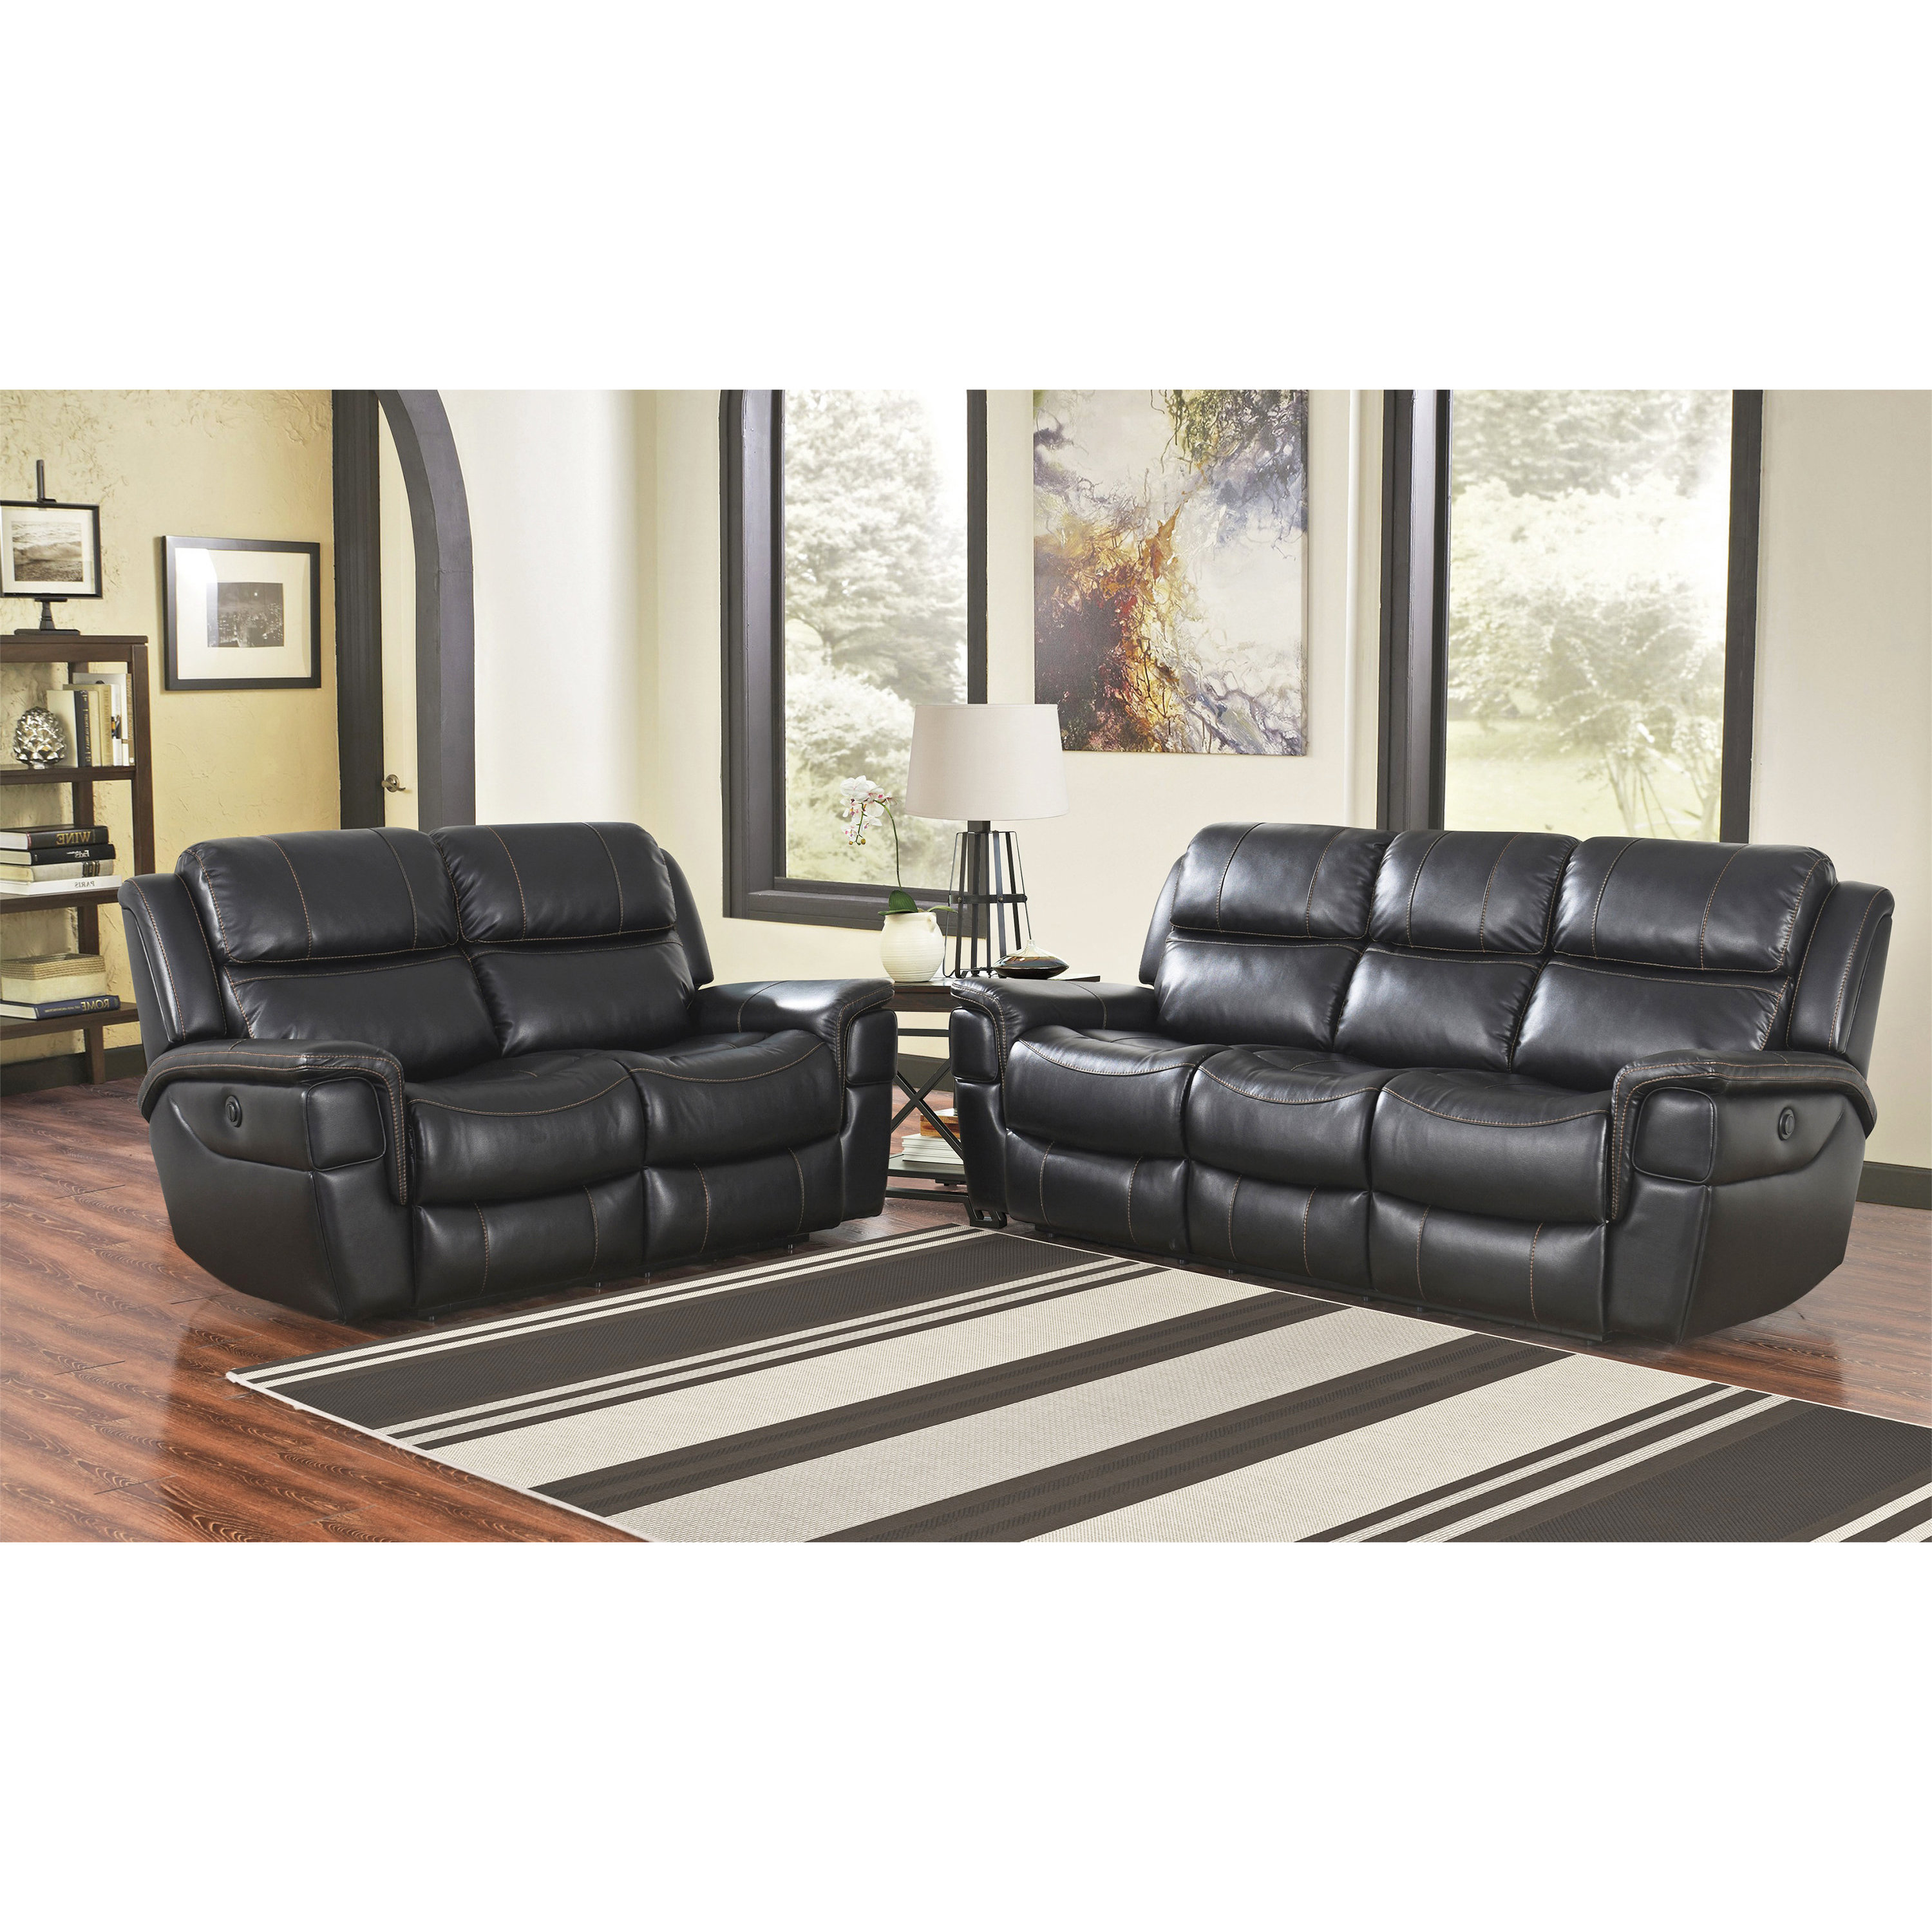 Sofa Mart Sale Buy Power Recline Sofas Couches Online At Overstock Our Best